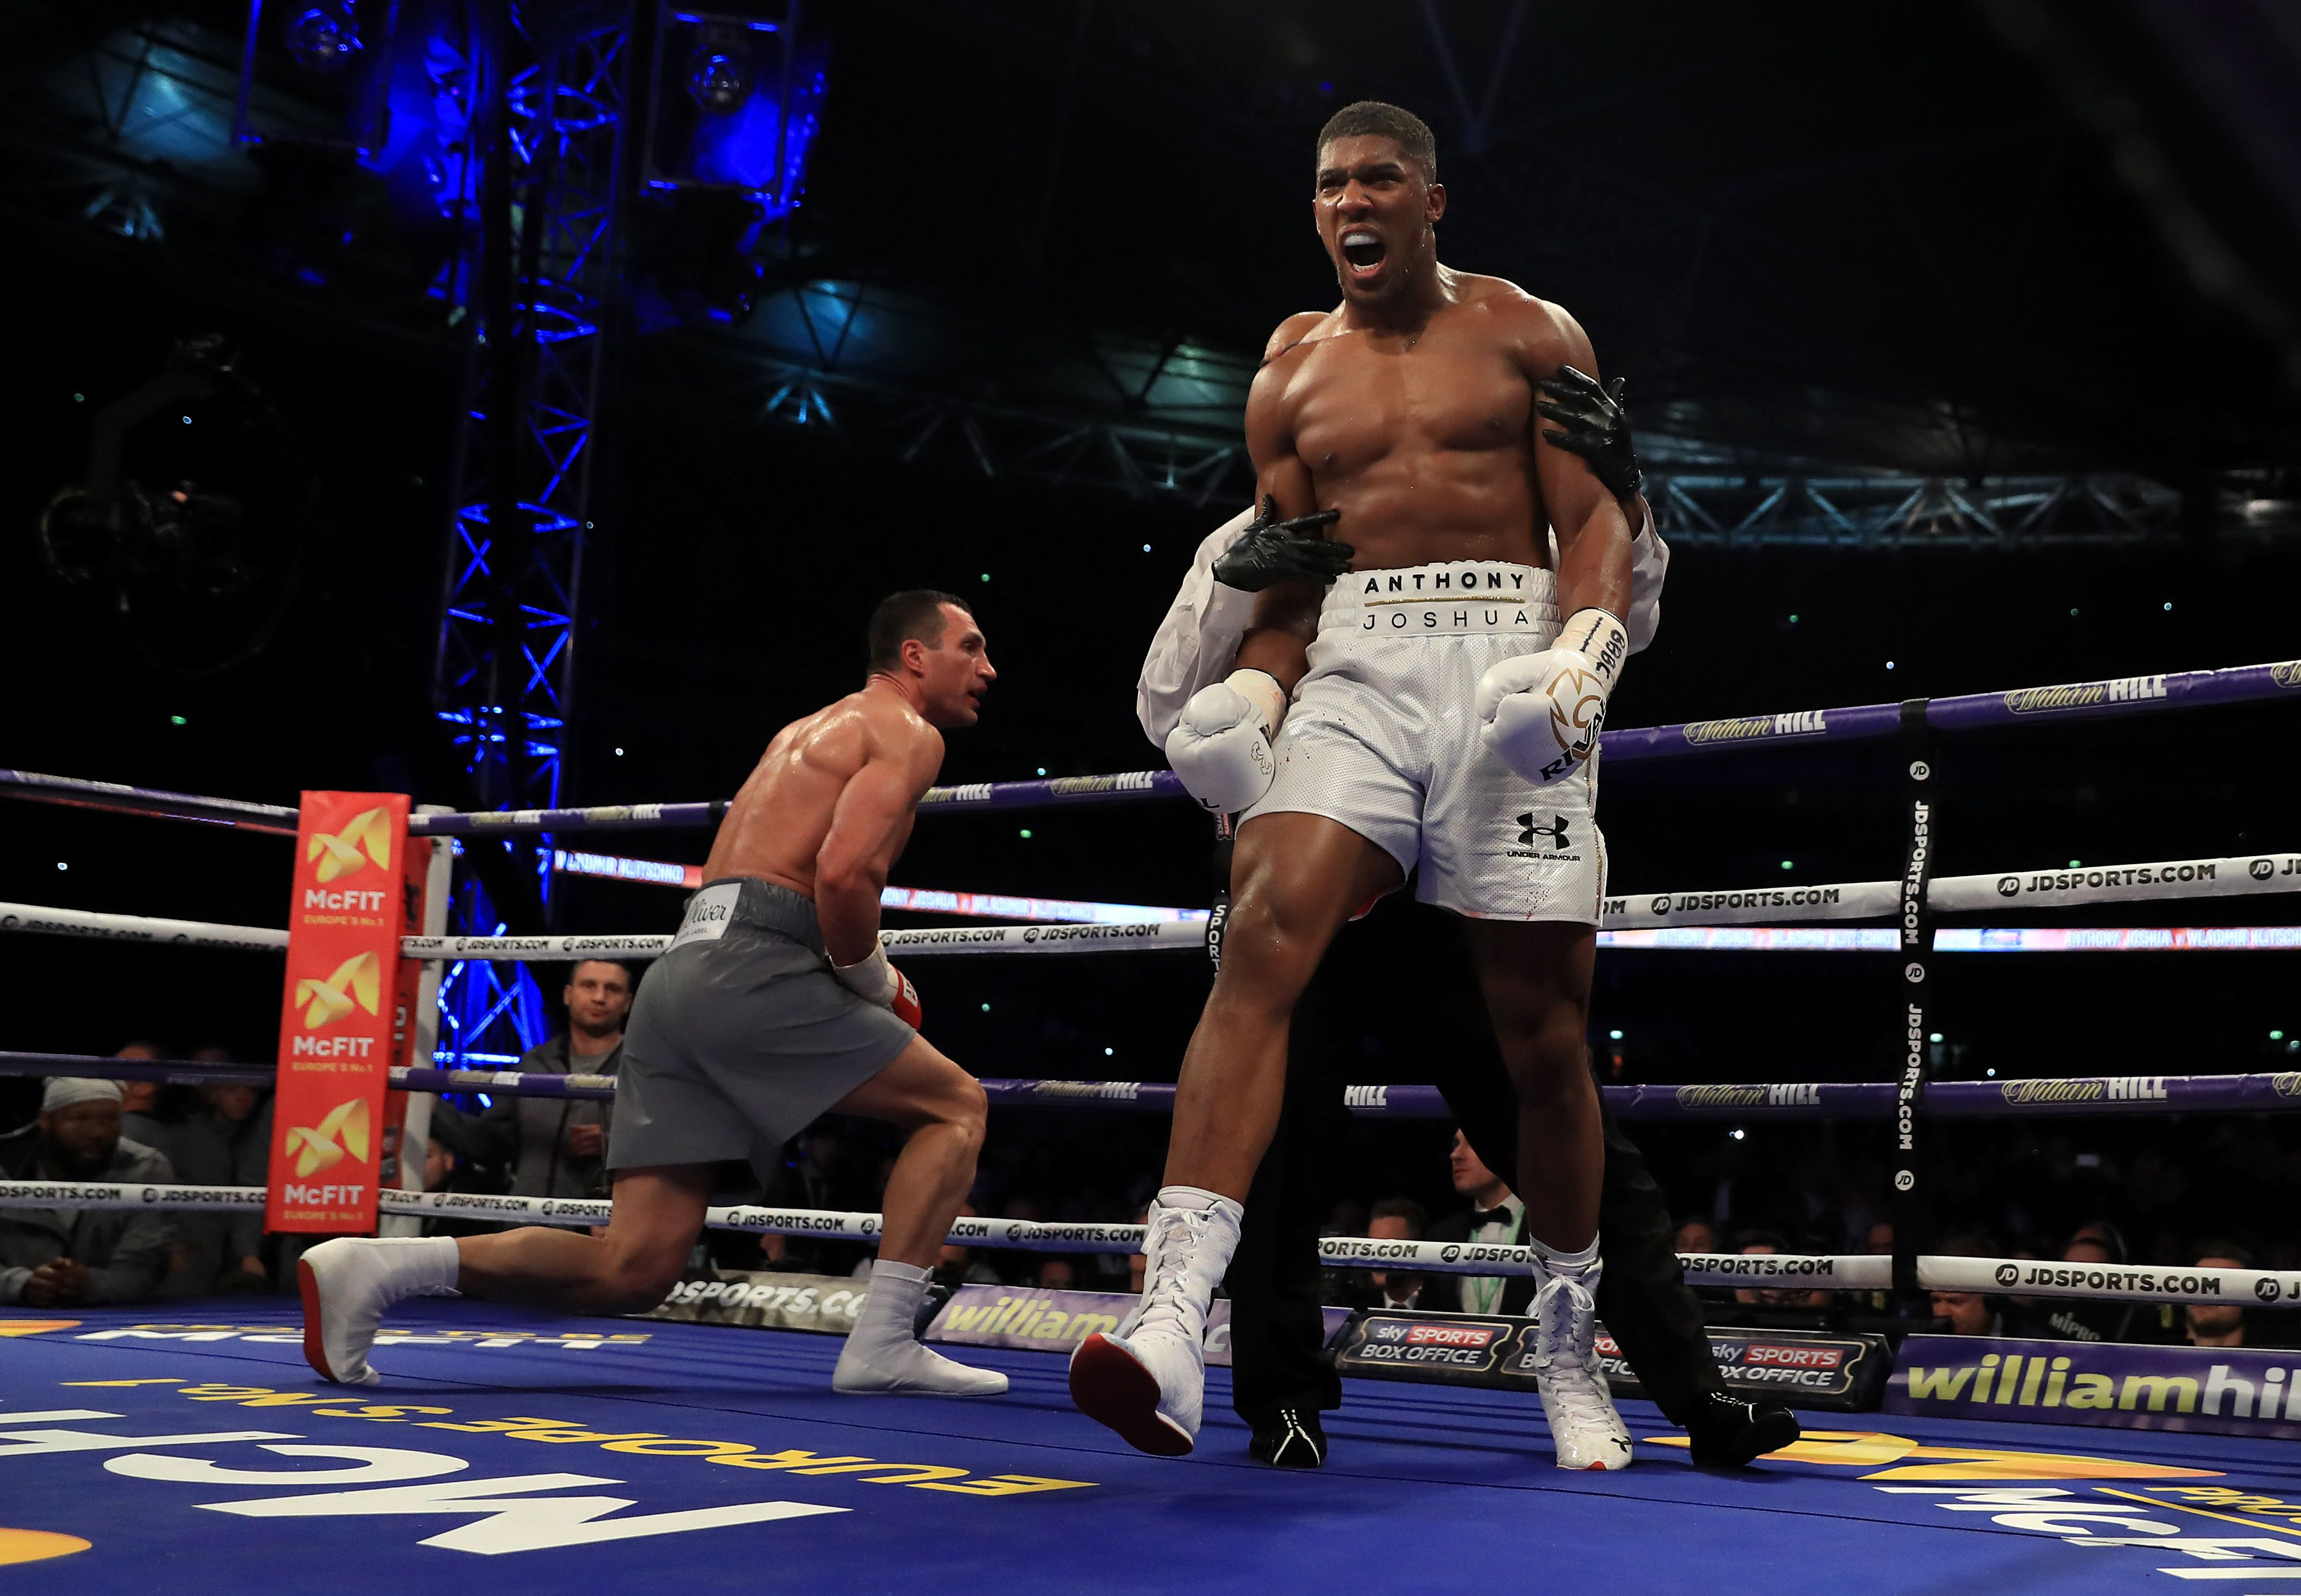 7da7c62ad58 Here s What Anthony Joshua Said To Klitschko Minutes Before Knocking Him Out